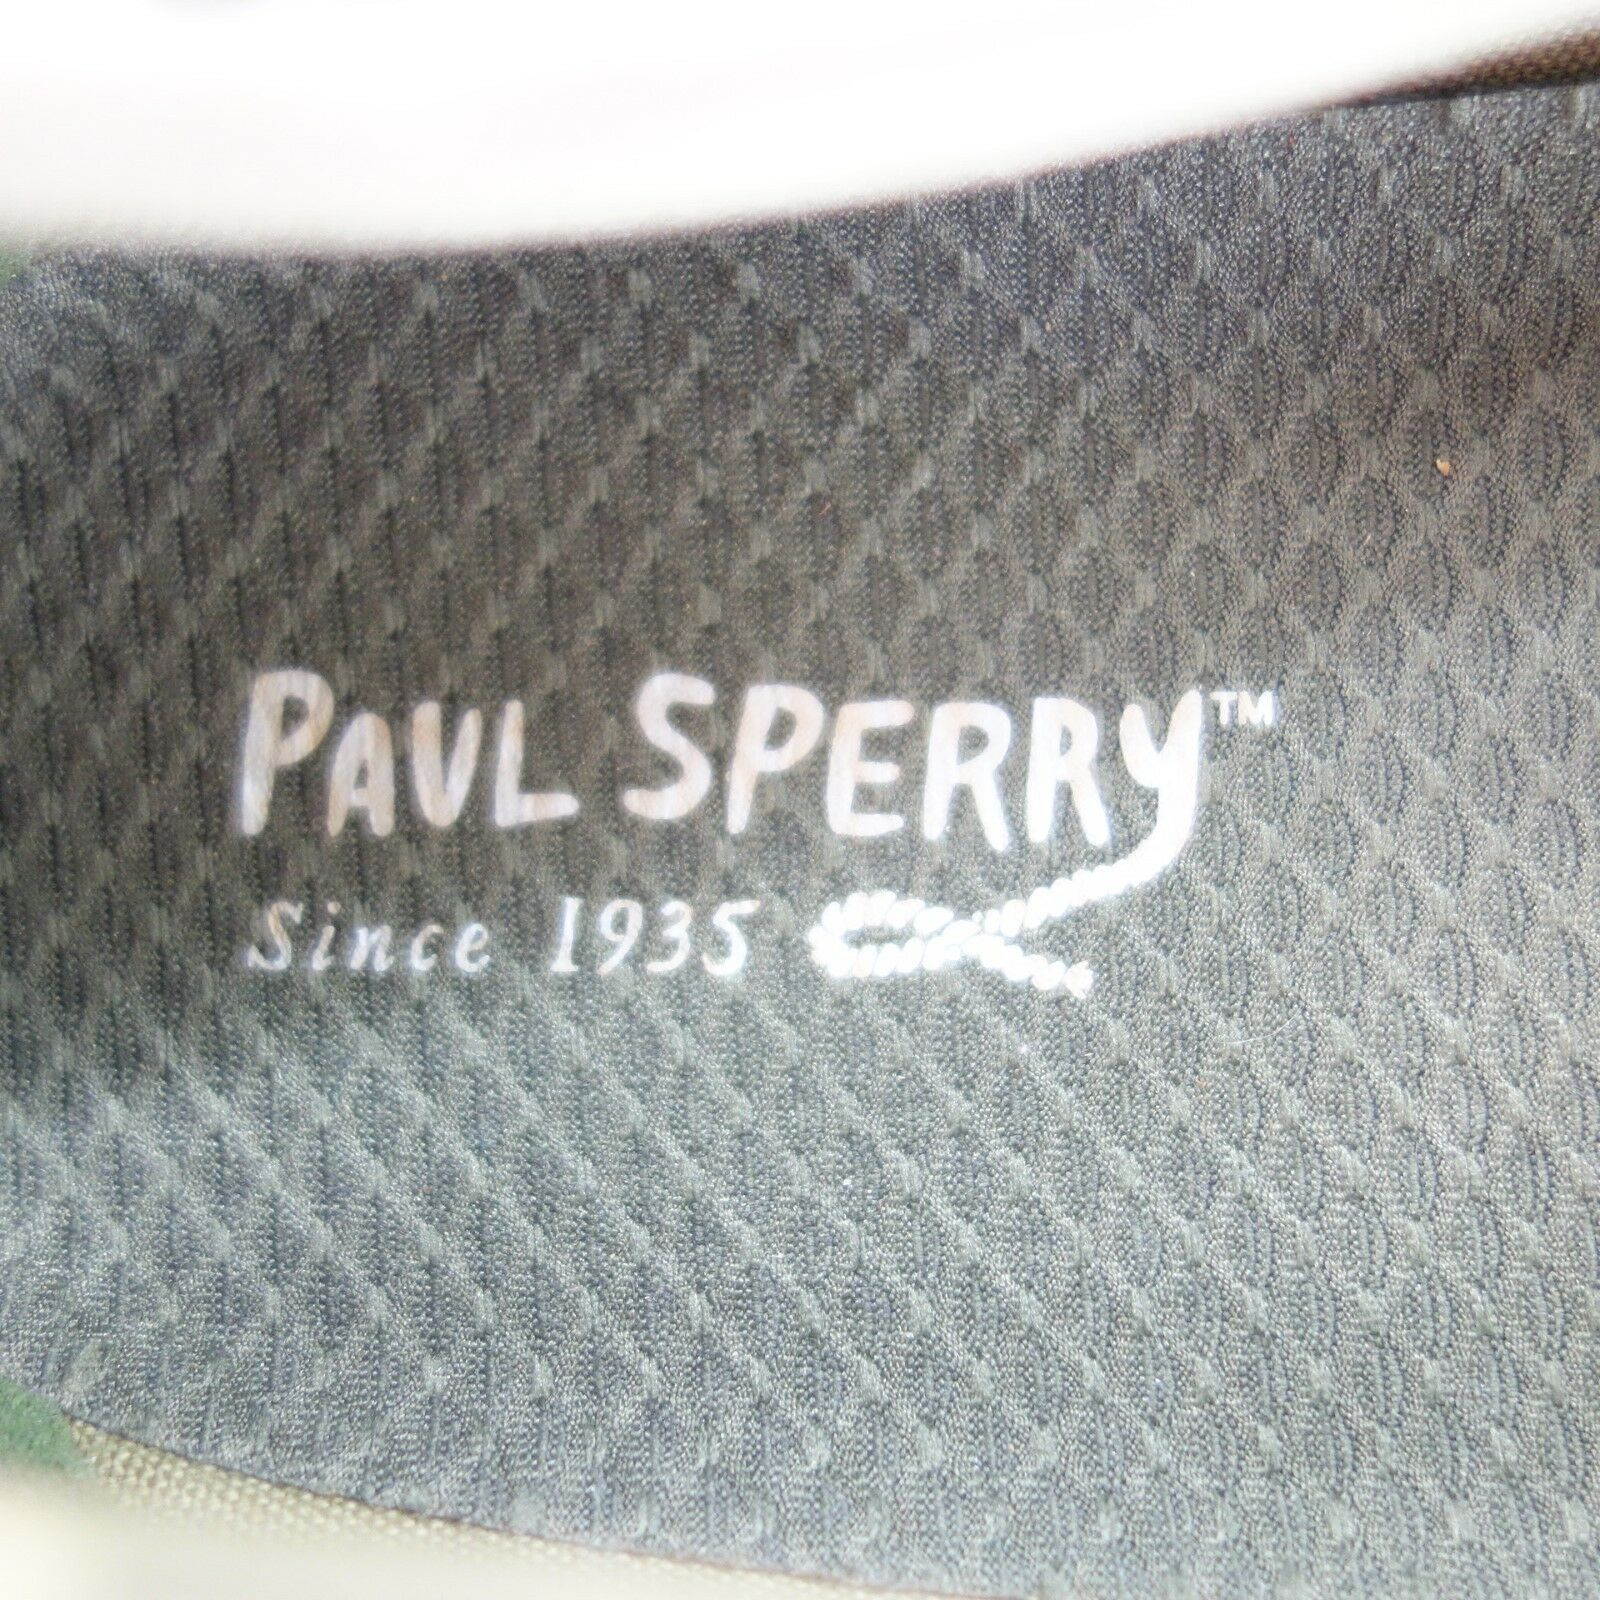 PAUL SPERRY 41,5 Loafer Gr 41,5 SPERRY 42 US 9 Leder Halbschuh Stiefelschuh Khaki NP 120 NEU fb51ef